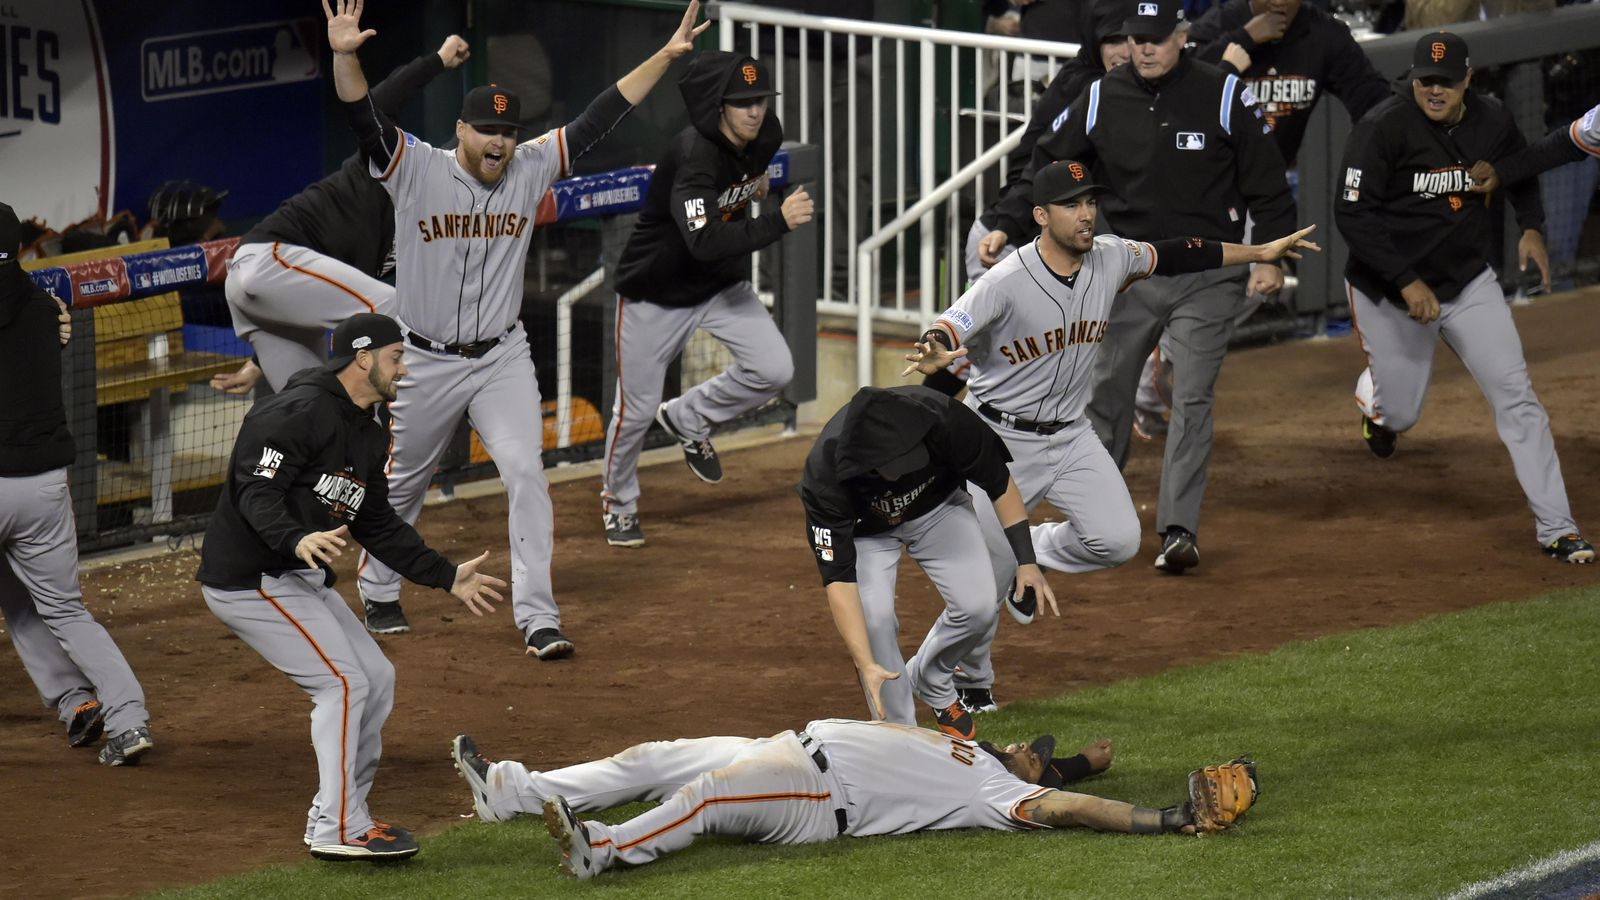 Watch the last out of the 2014 World Series with our friends at Finnerty's